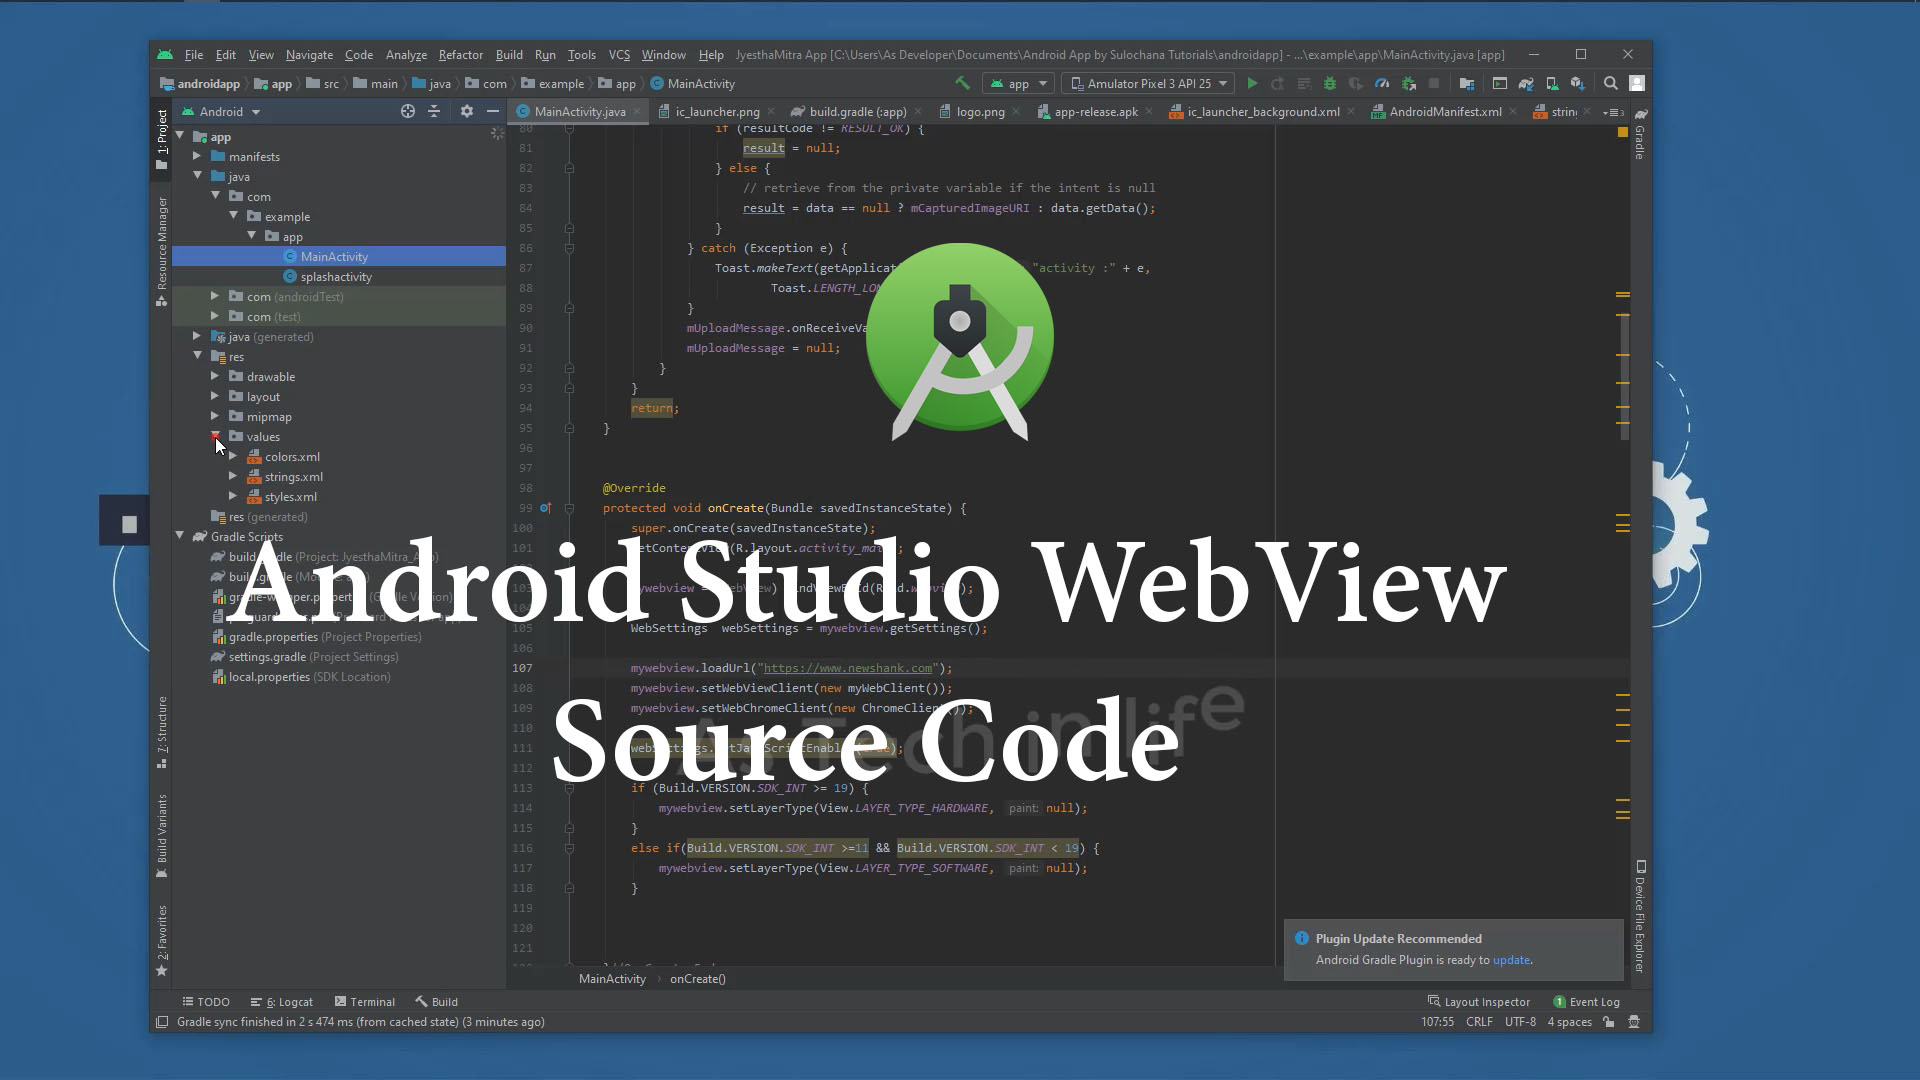 Webview source code  android studio free download 2021 - newshank.com